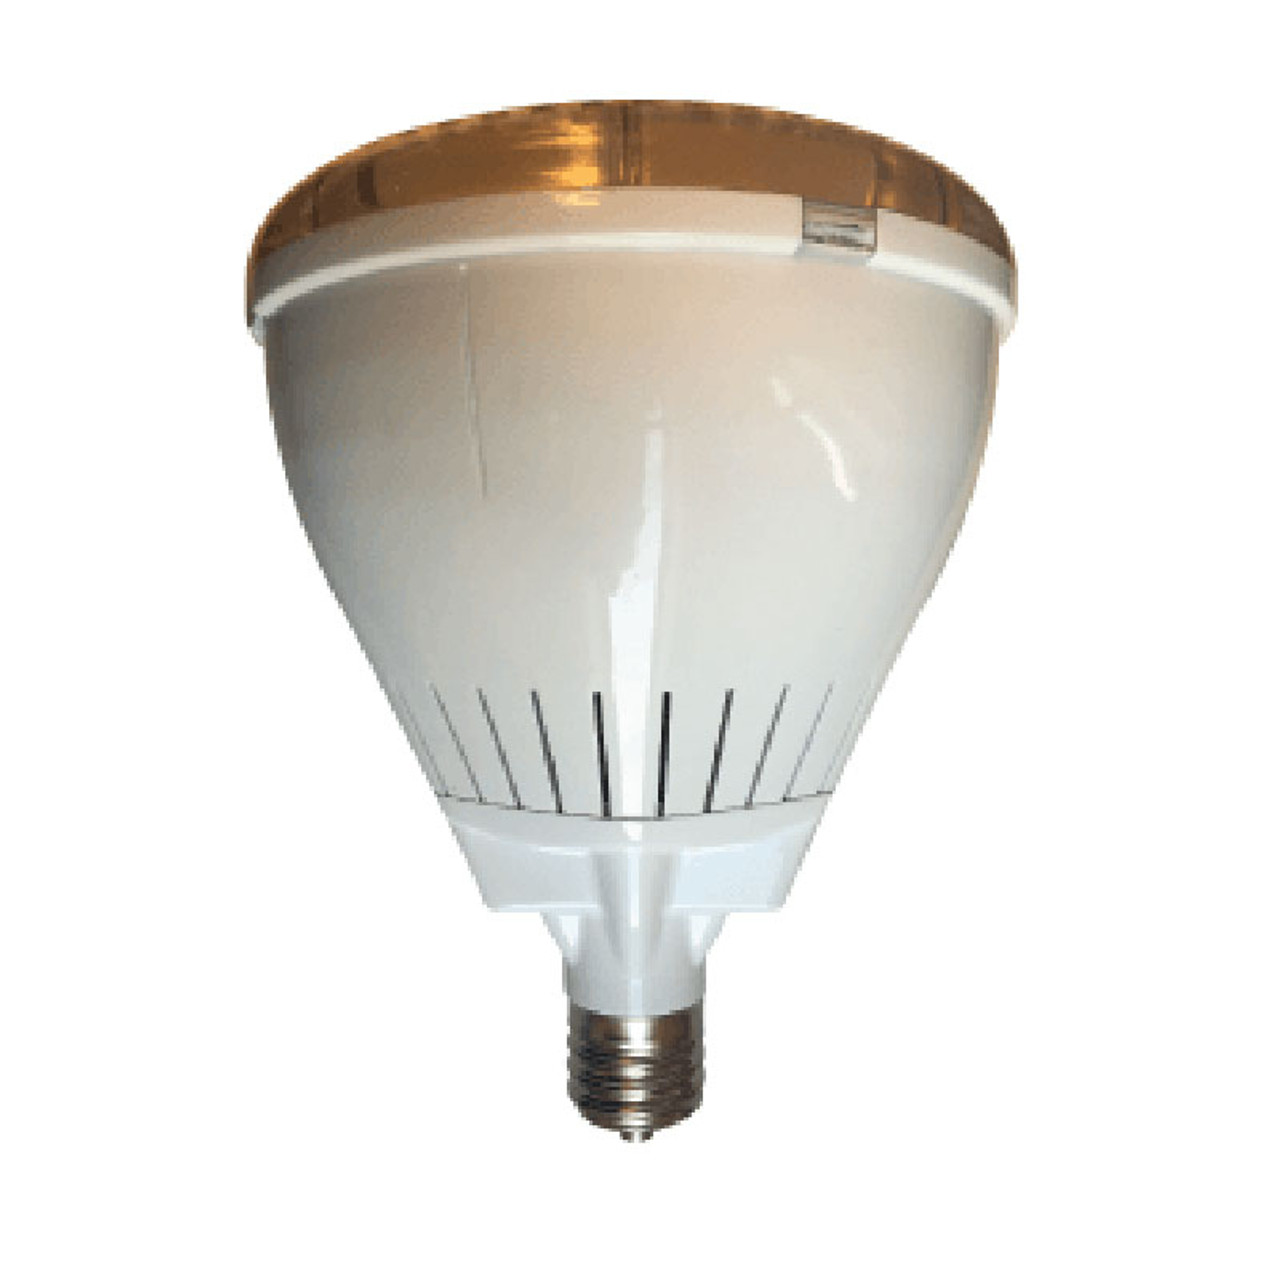 direct led replacement lamp for 750 1000w metal halide ballast